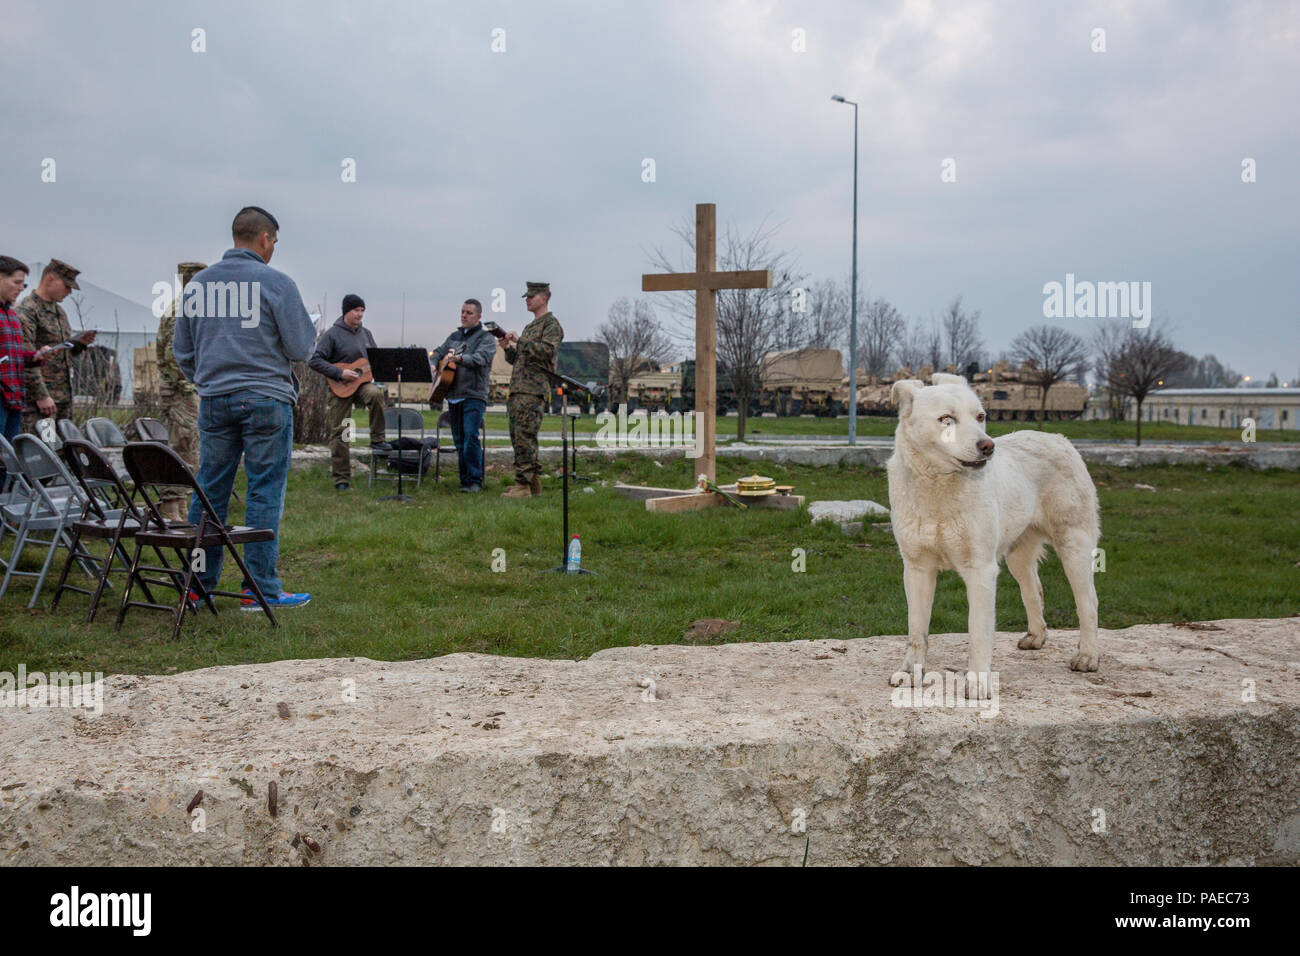 U.S. Service members give praise in song as a stray dog howls in unison during an Easter sunrise worship service aboard Mihail Kognalniceanu Air Base, Romania, March 27, 2016. Christians around the world celebrated Easter and the resurrection of Jesus Christ. (U.S. Marine Corps photo by Cpl. Kelly L. Street, 2D MARDIV COMCAM/Released) Stock Photo